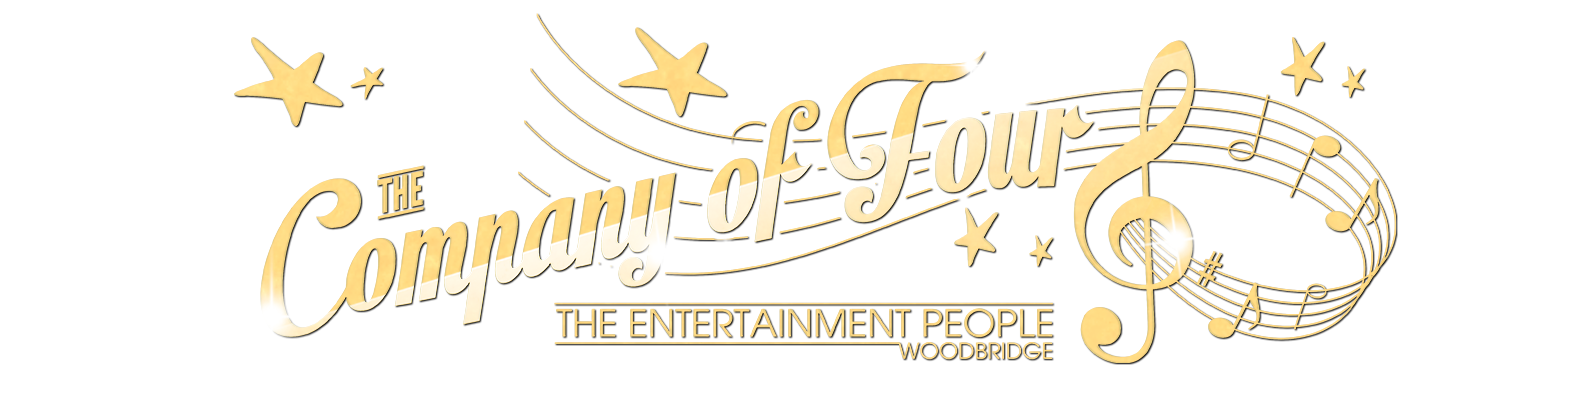 The Company of Four Logo